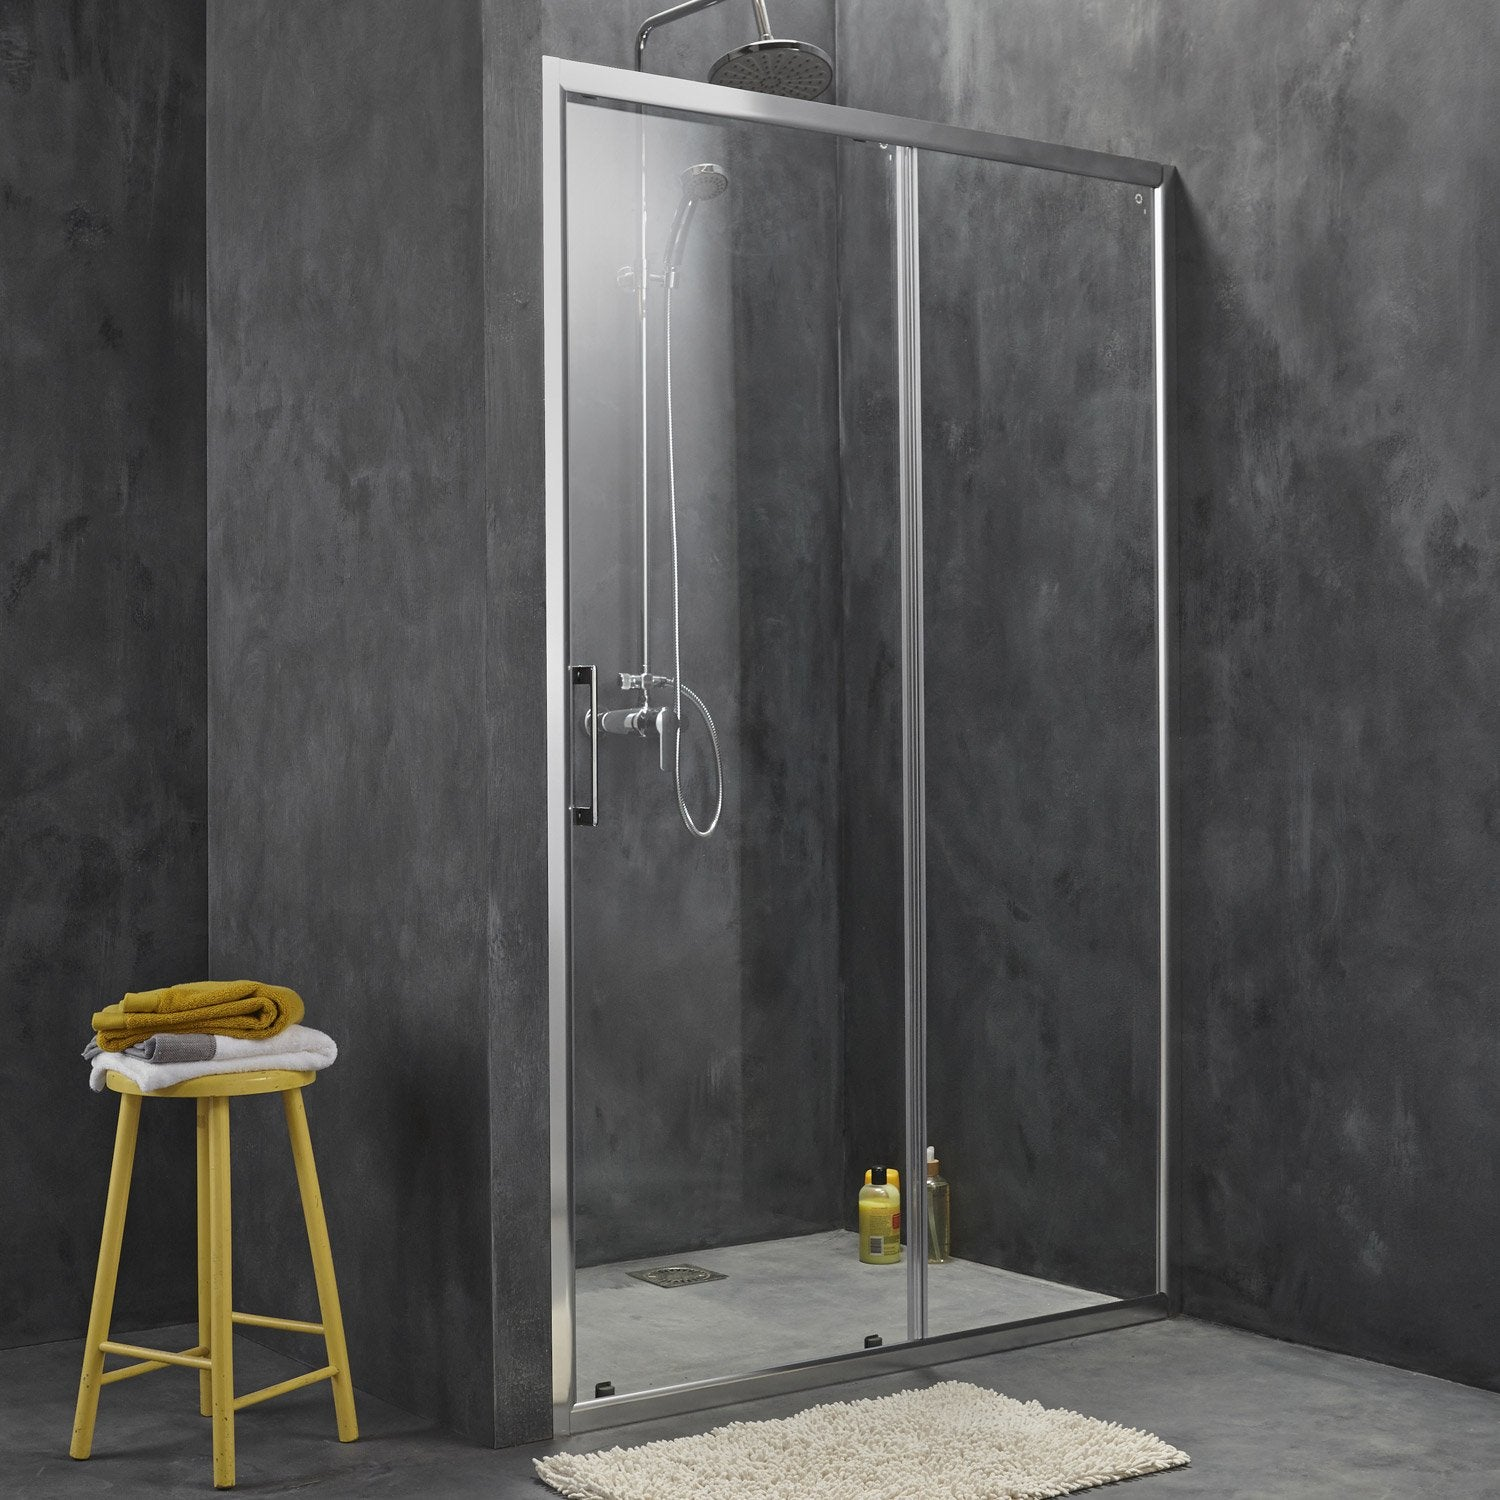 Porte de douche coulissante sensea remix verre de for Portes de douche leroy merlin